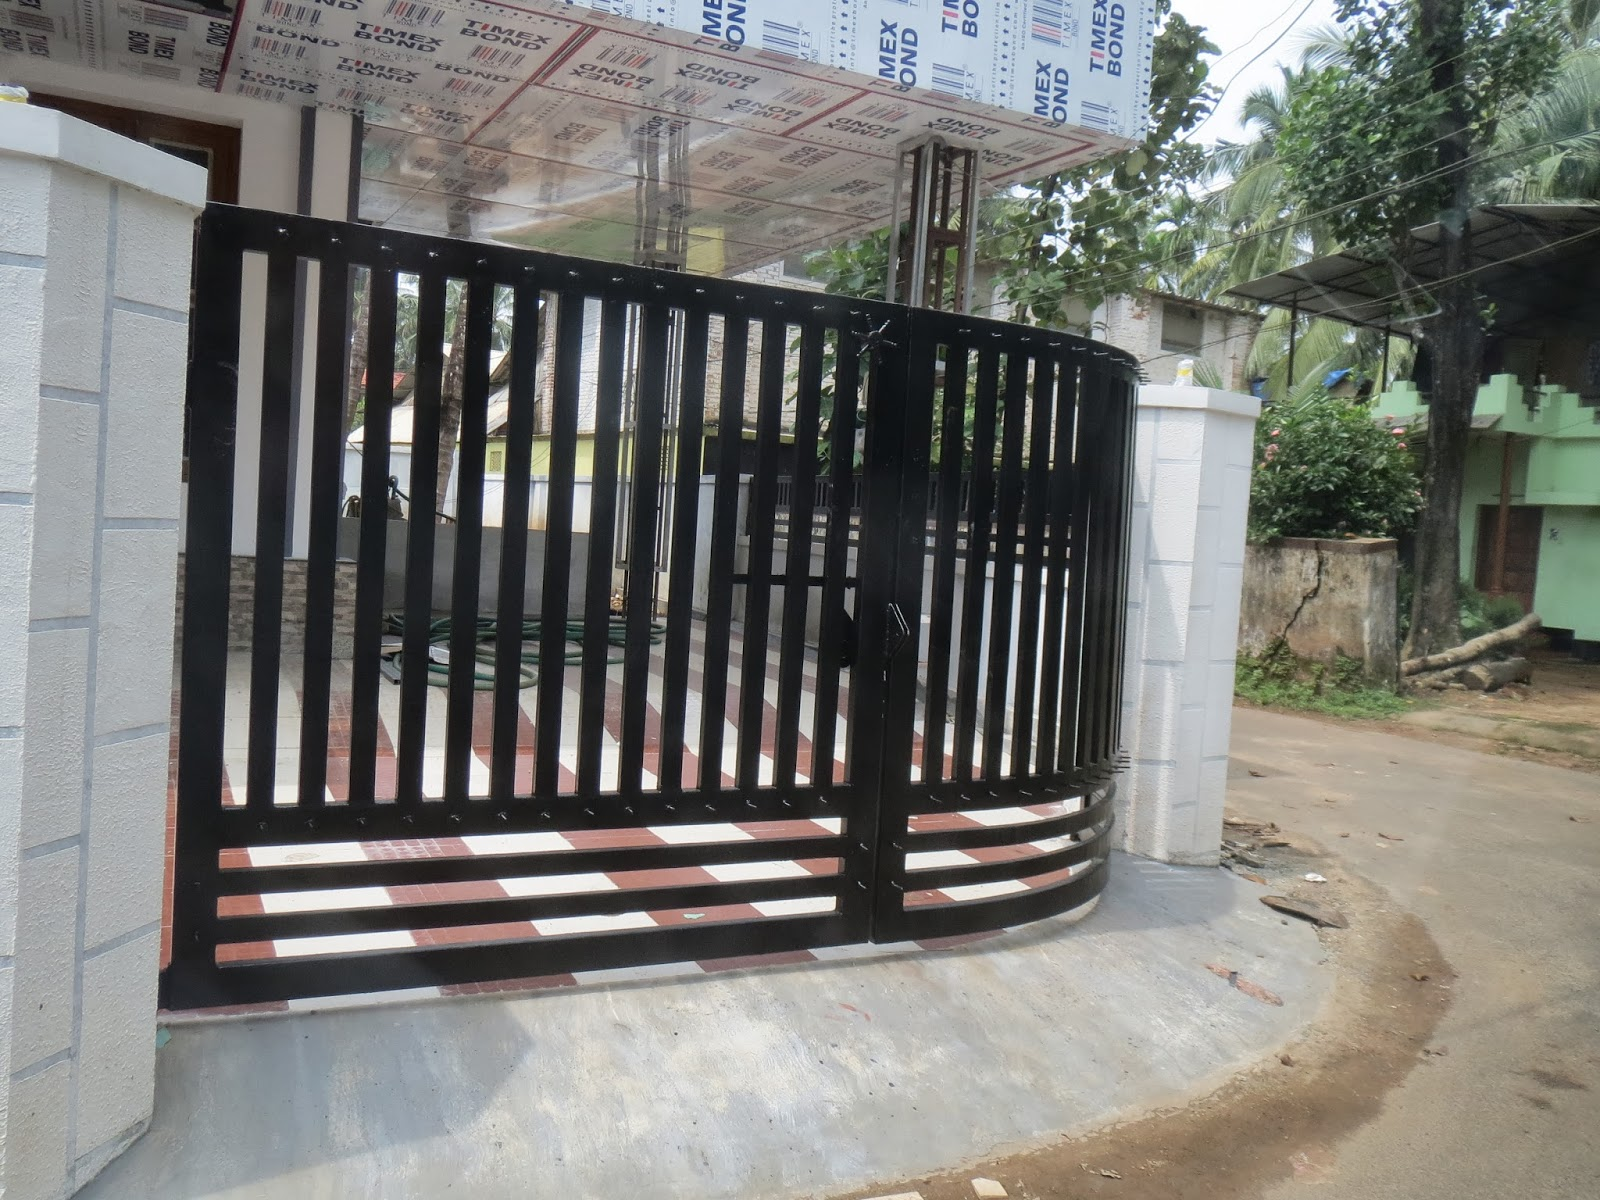 Kerala Gate Designs: Different types of gates in Kerala, India.